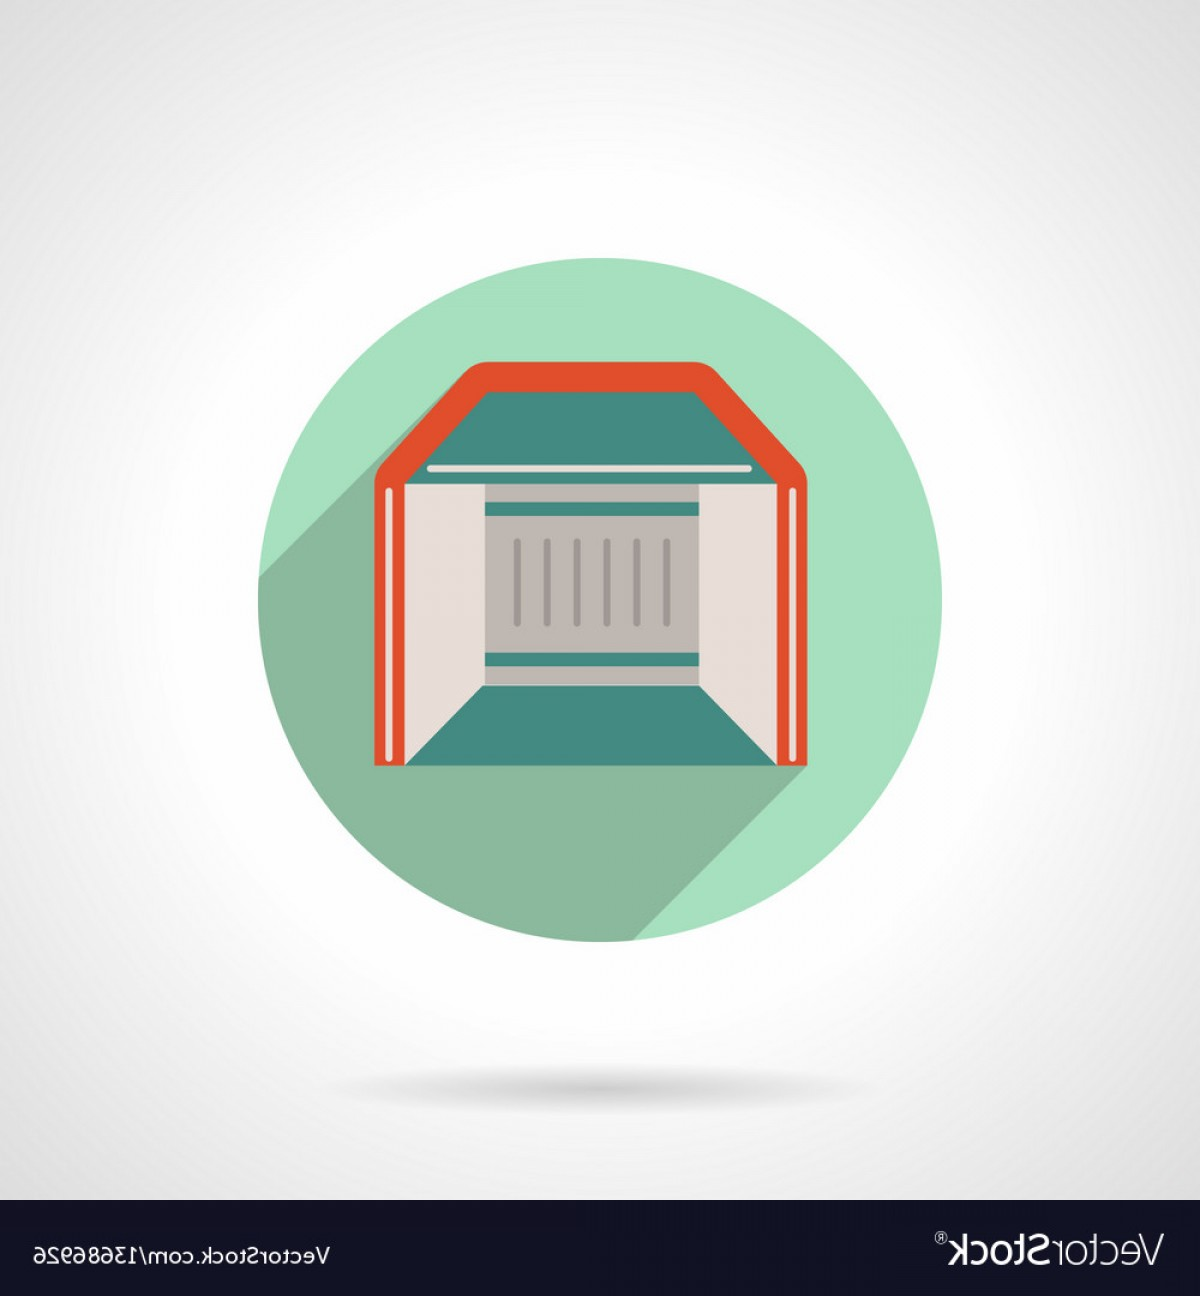 Commercial Booth Vector: Trade Show Booth Flat Round Icon Vector